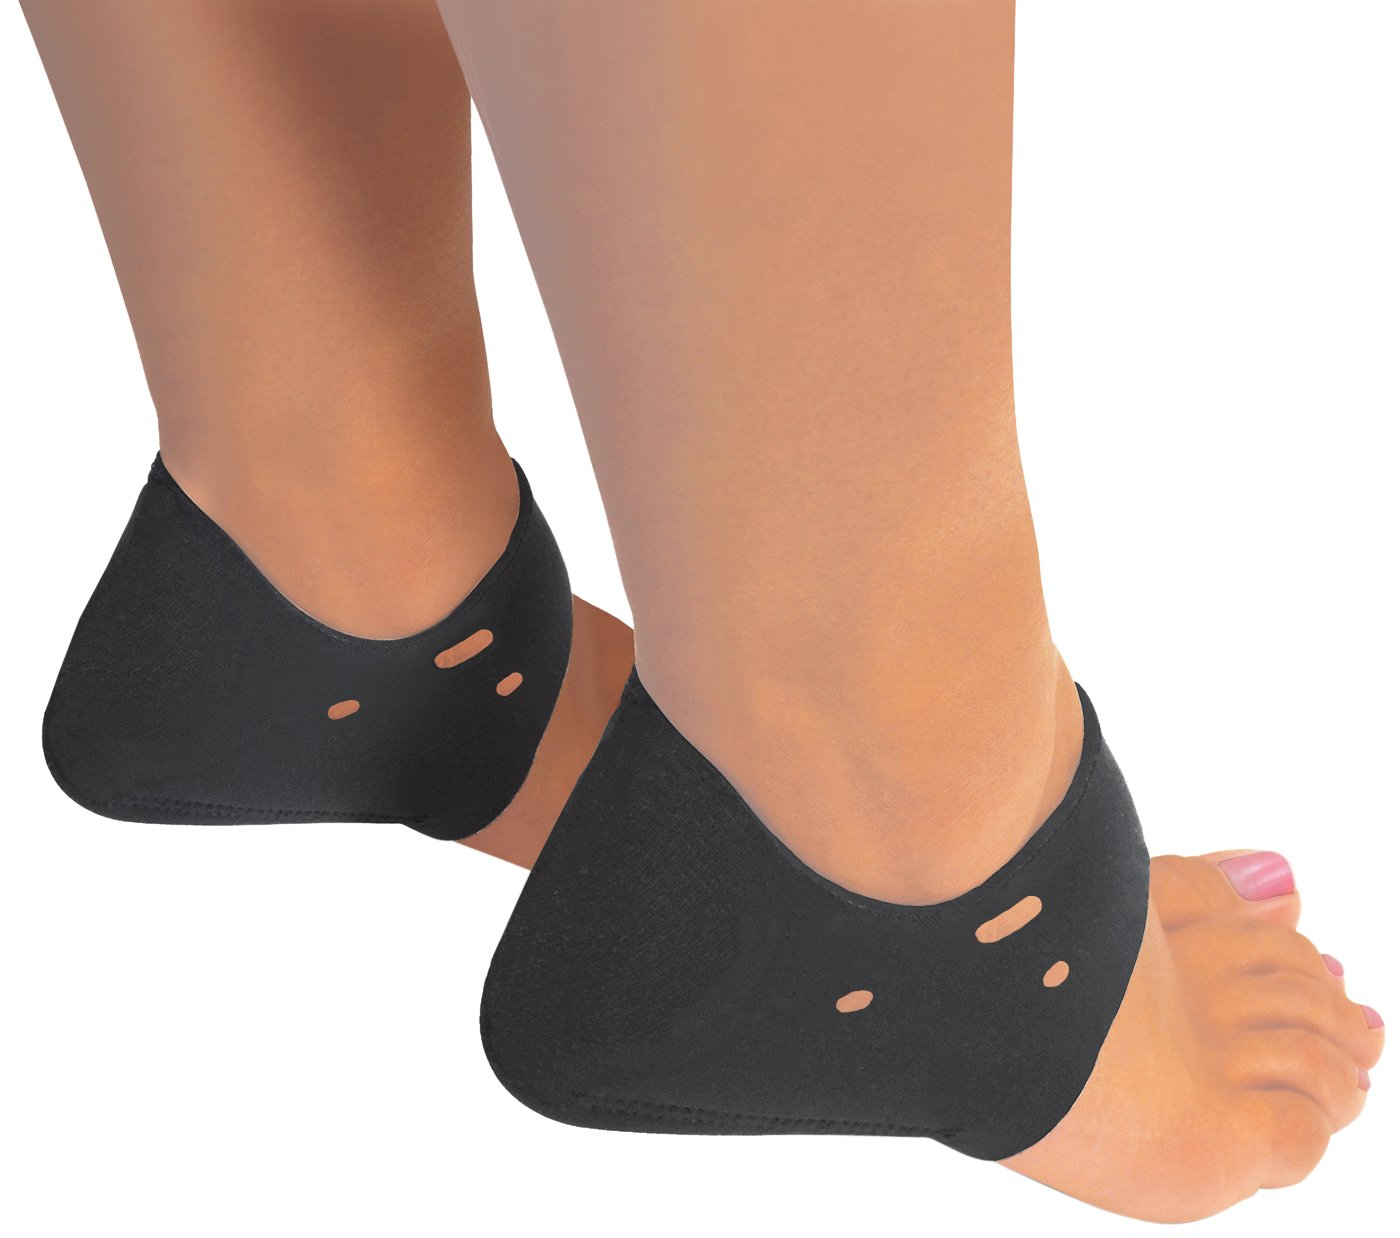 Beautyko Shock Absorbing Plantar Fasciitis Therapy Wraps, 65 Count